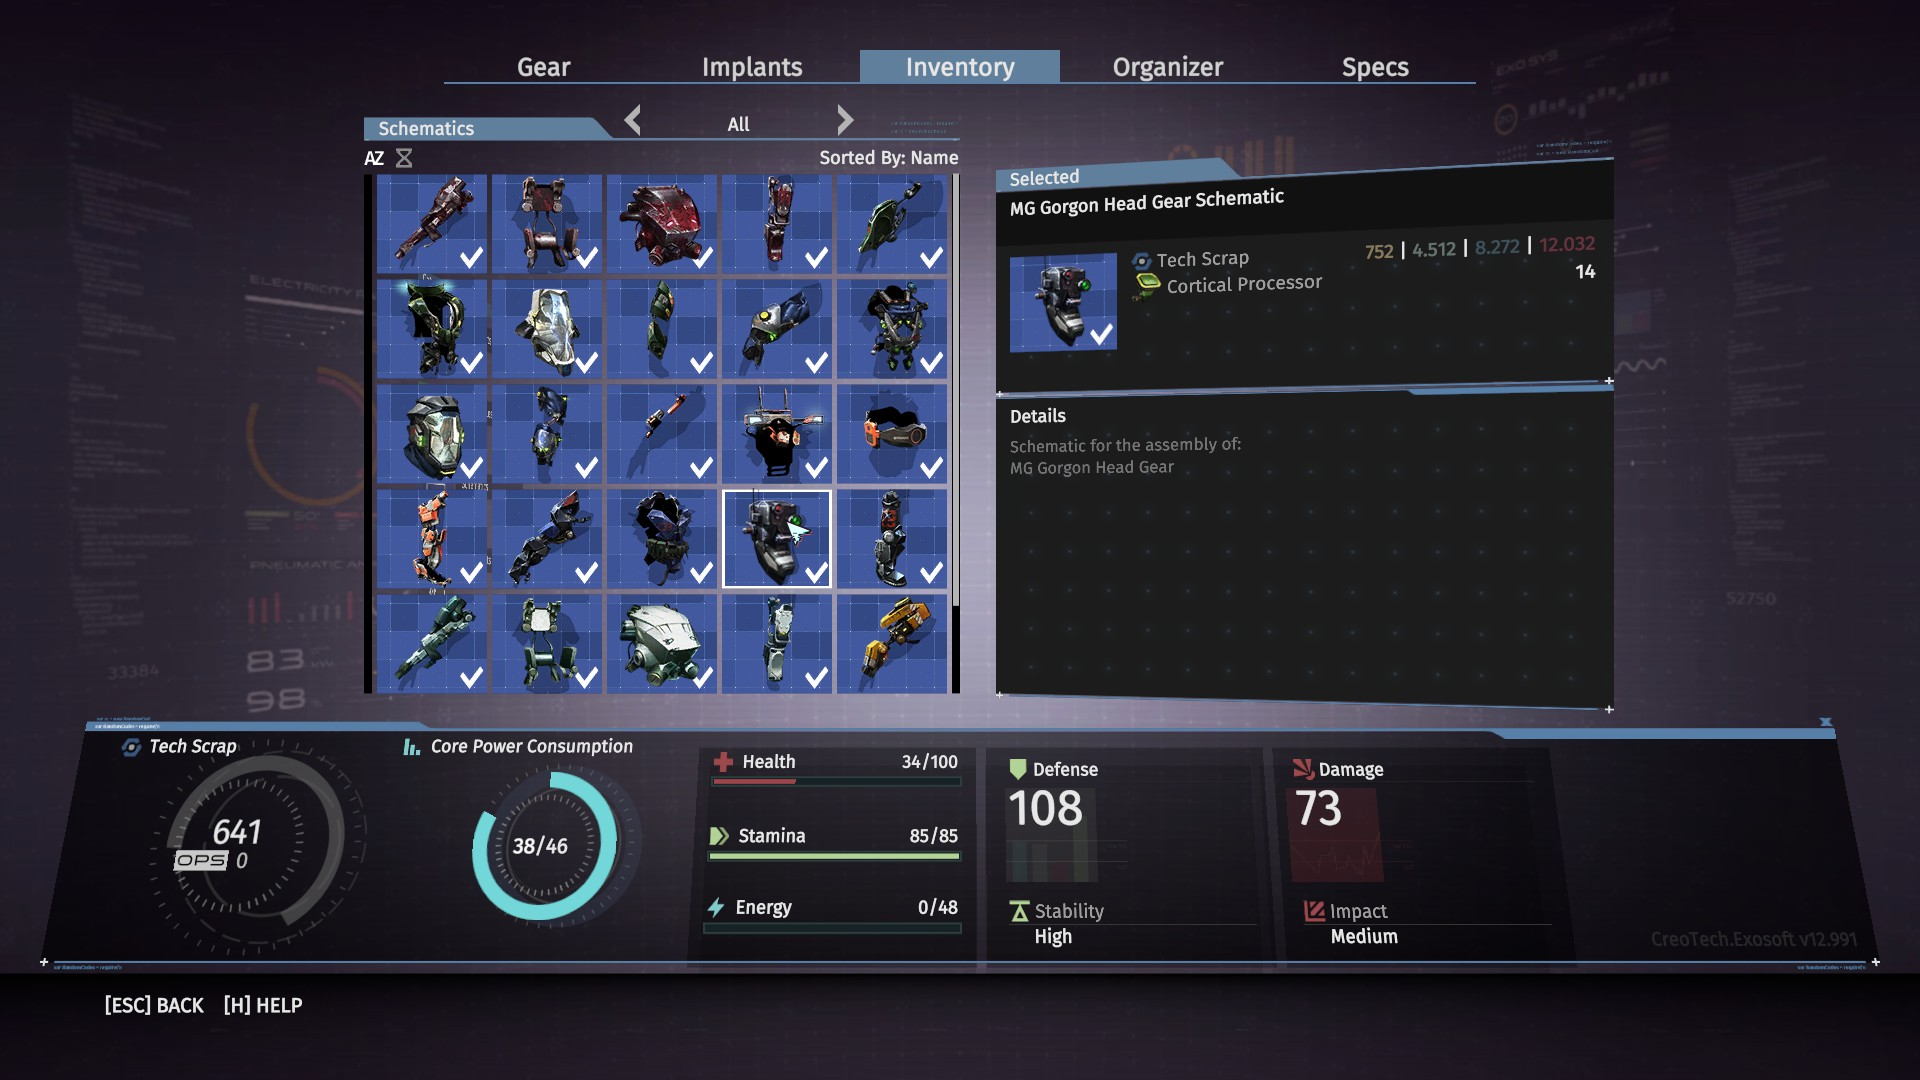 The Schematics tab shows all the Schematics you've been able to collect in The Surge.